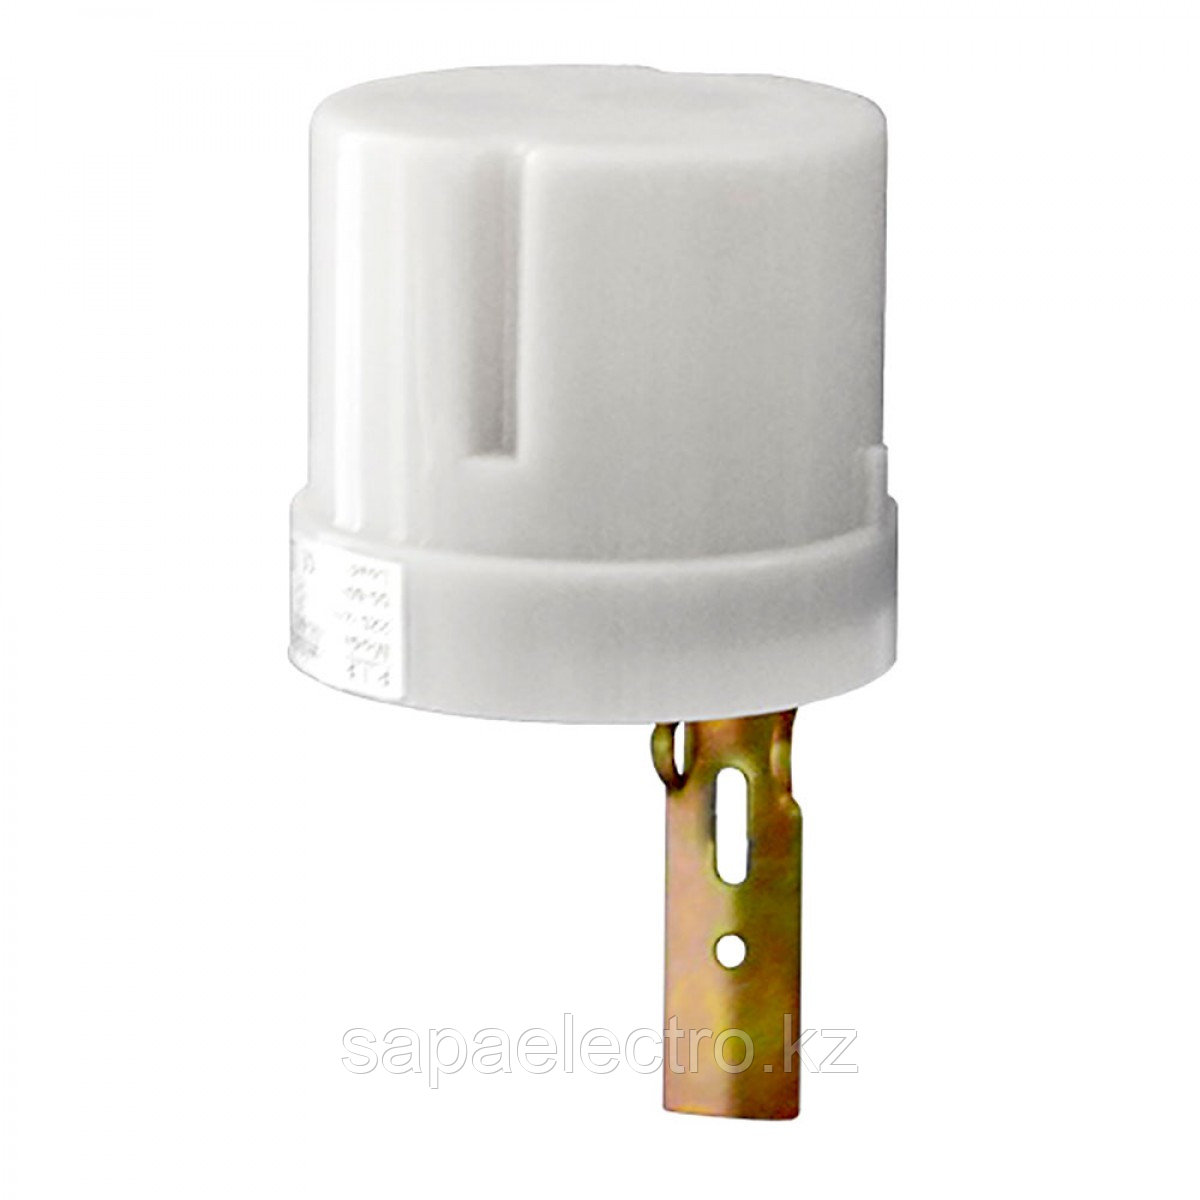 PHOTOCELL SWITCH MH-602, 25A  (100шт)   (MASTE)